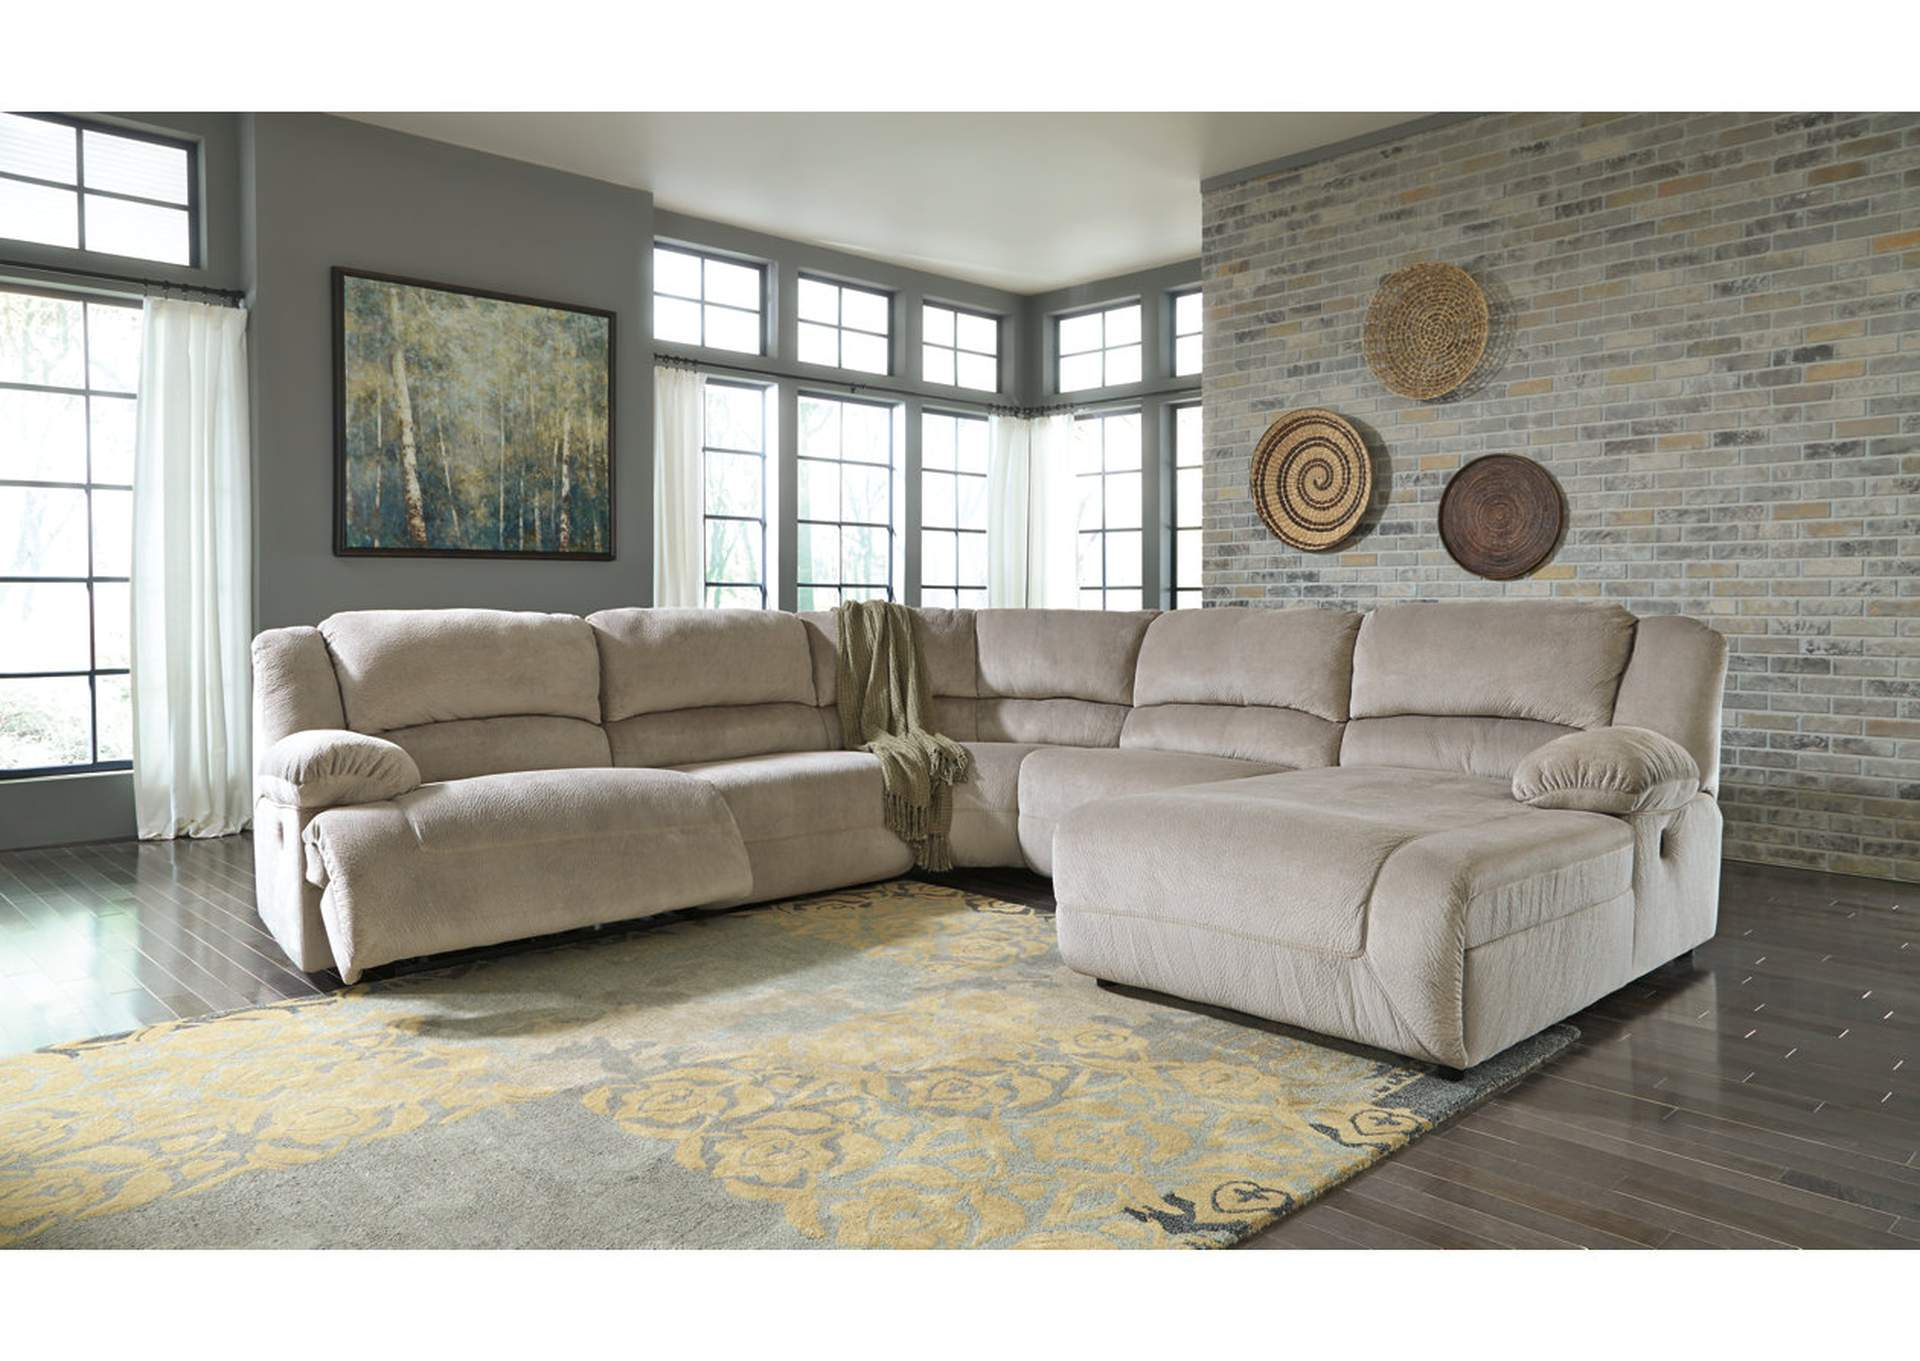 Toletta Granite Zero Wall Reclining Console Sectional w/Right Facing Chaise,Signature Design By Ashley